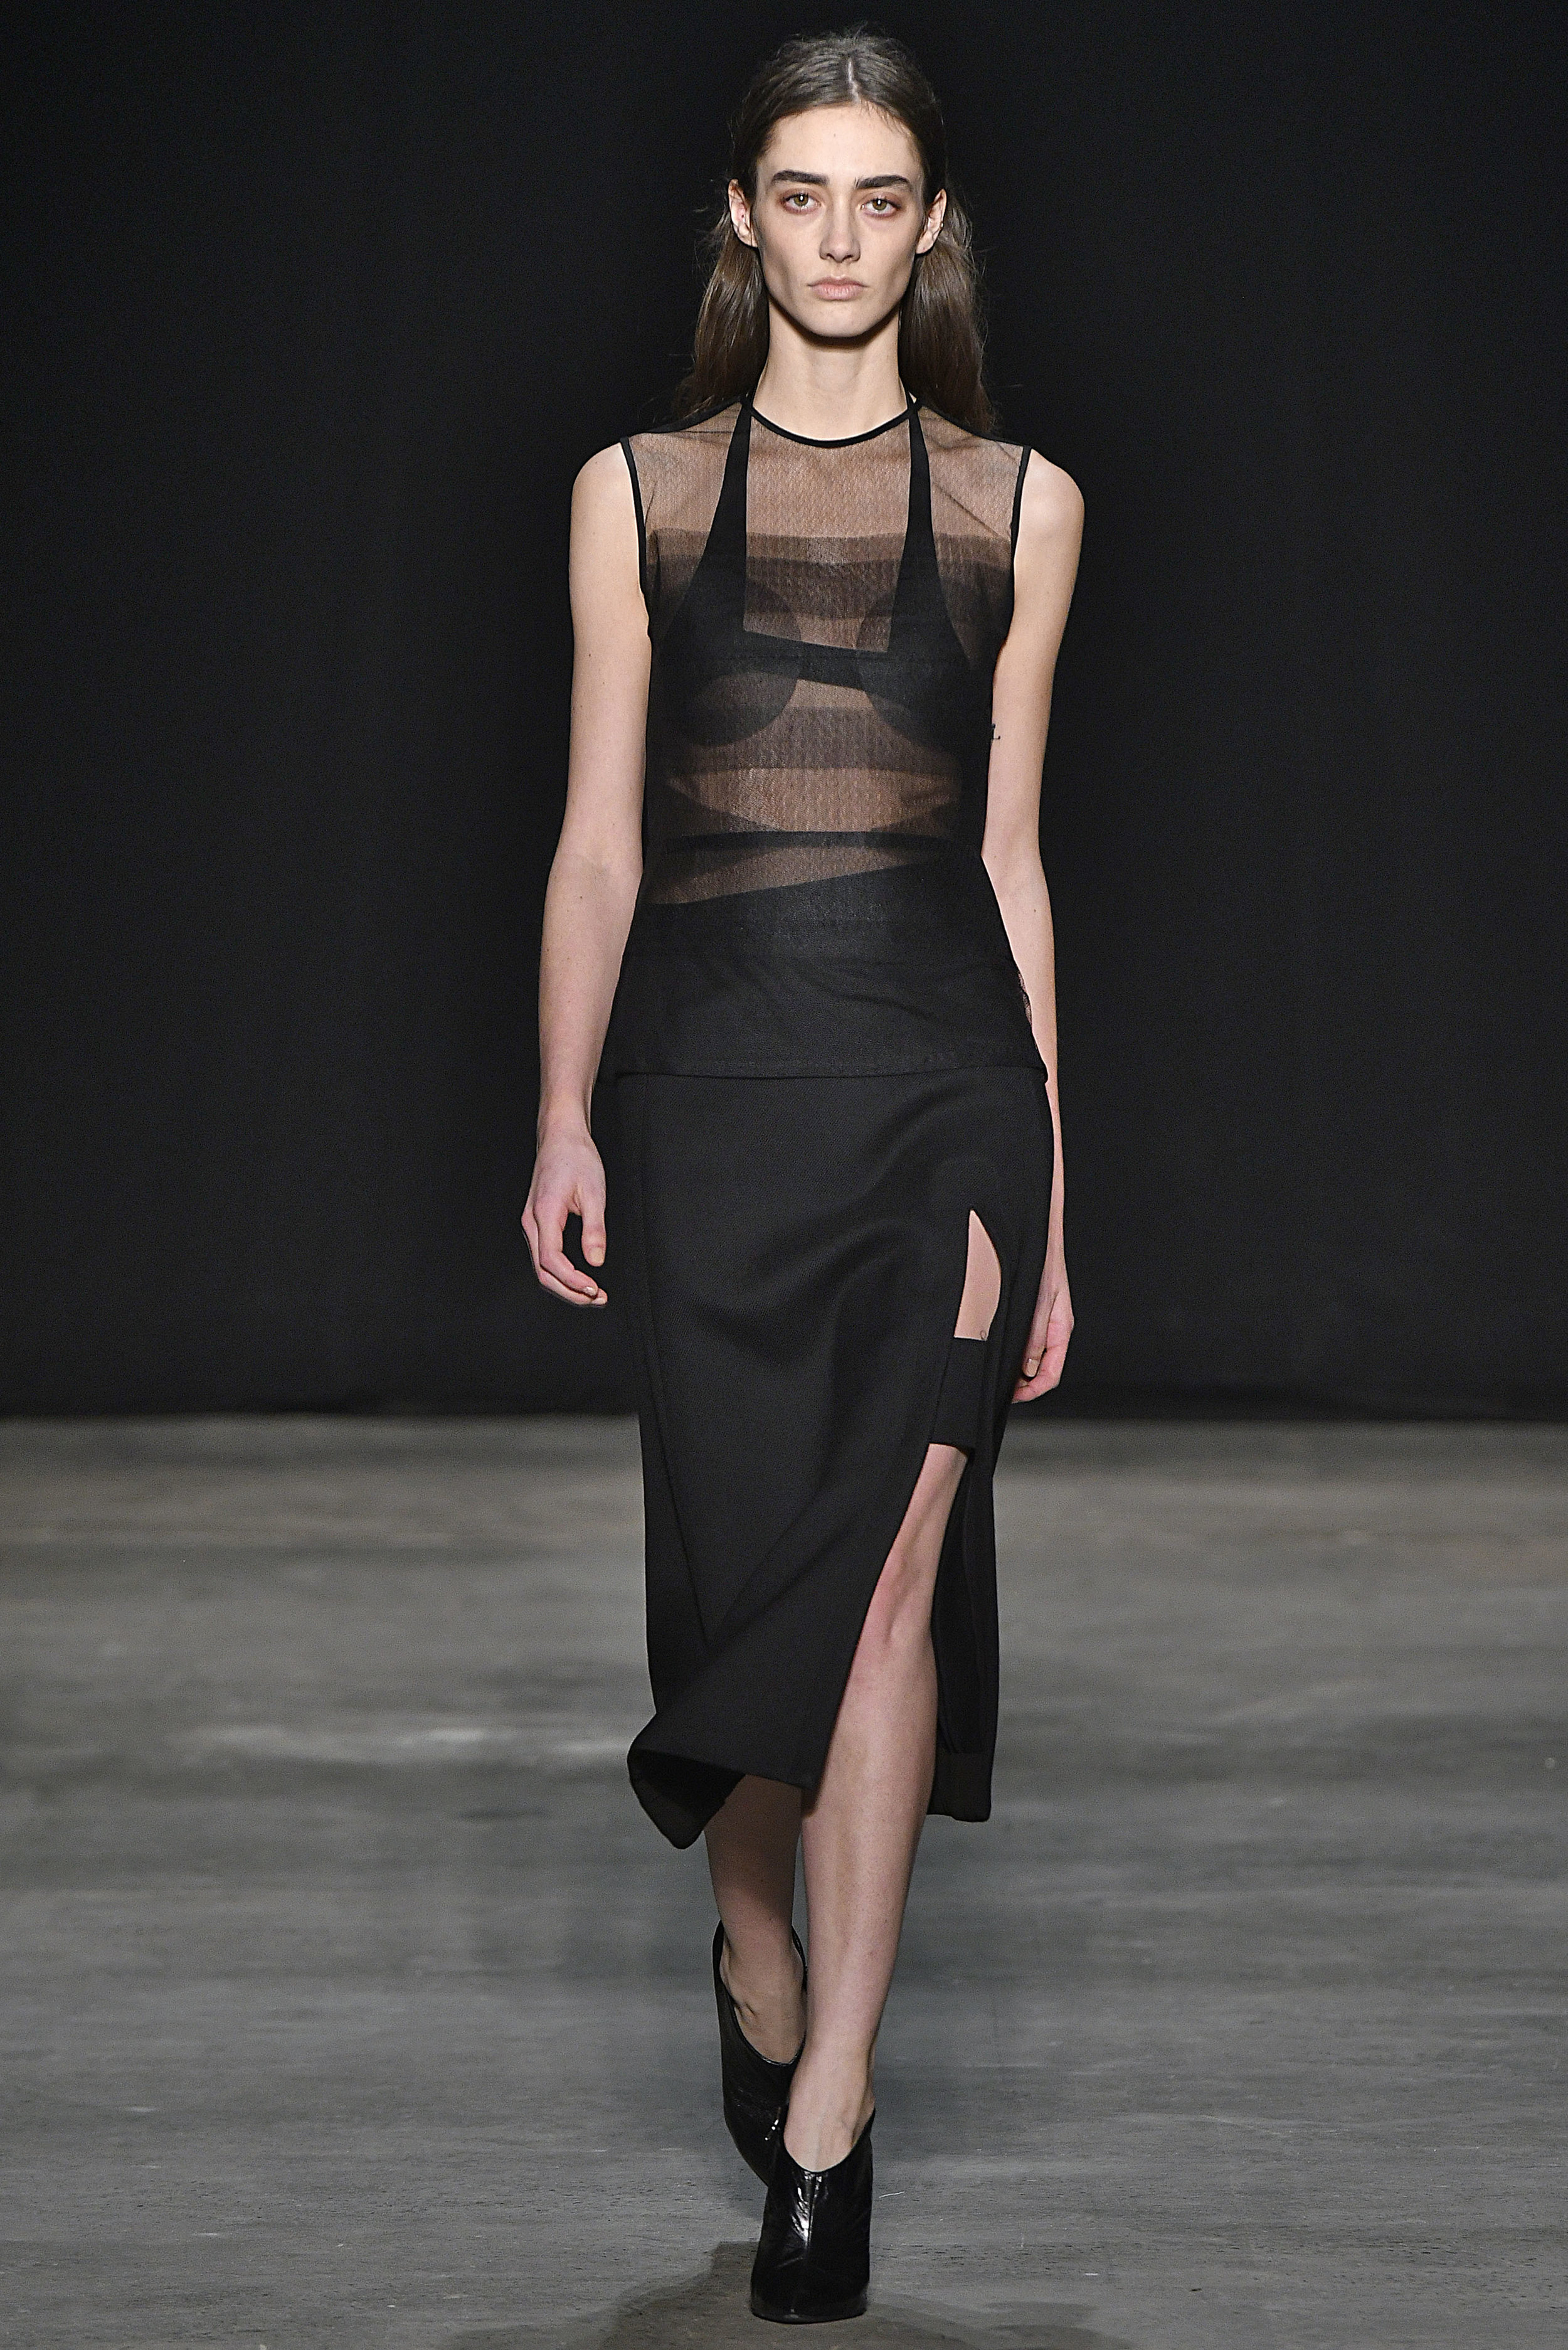 Narciso Rodriguez Fall 2017 collection. Black pressed tulle top over black silk sling bra  with black wool twill skirt.